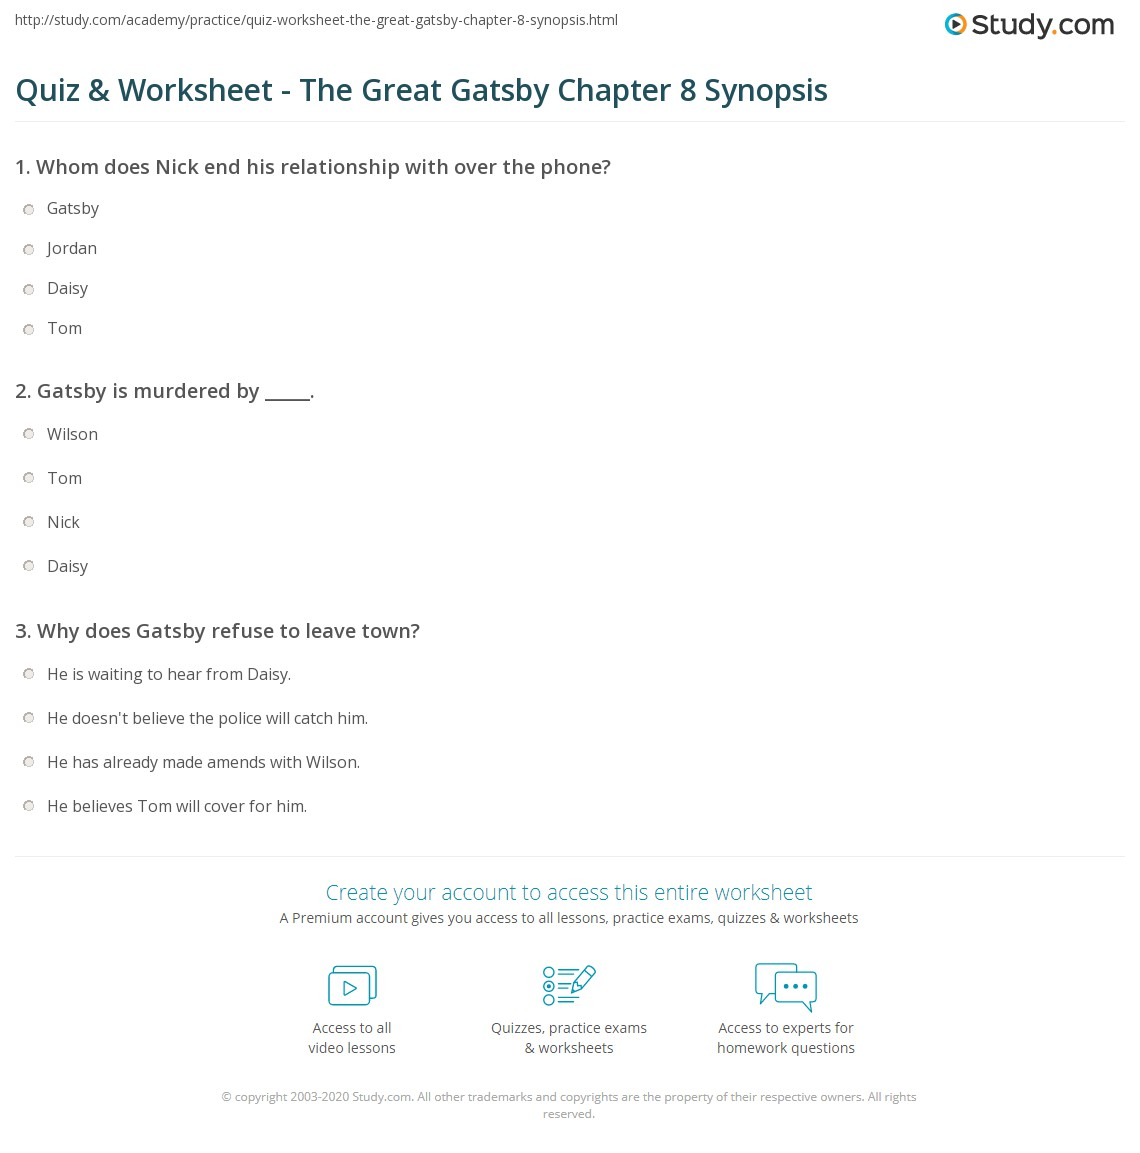 quiz worksheet the great gatsby chapter synopsis com print the great gatsby chapter 8 summary worksheet